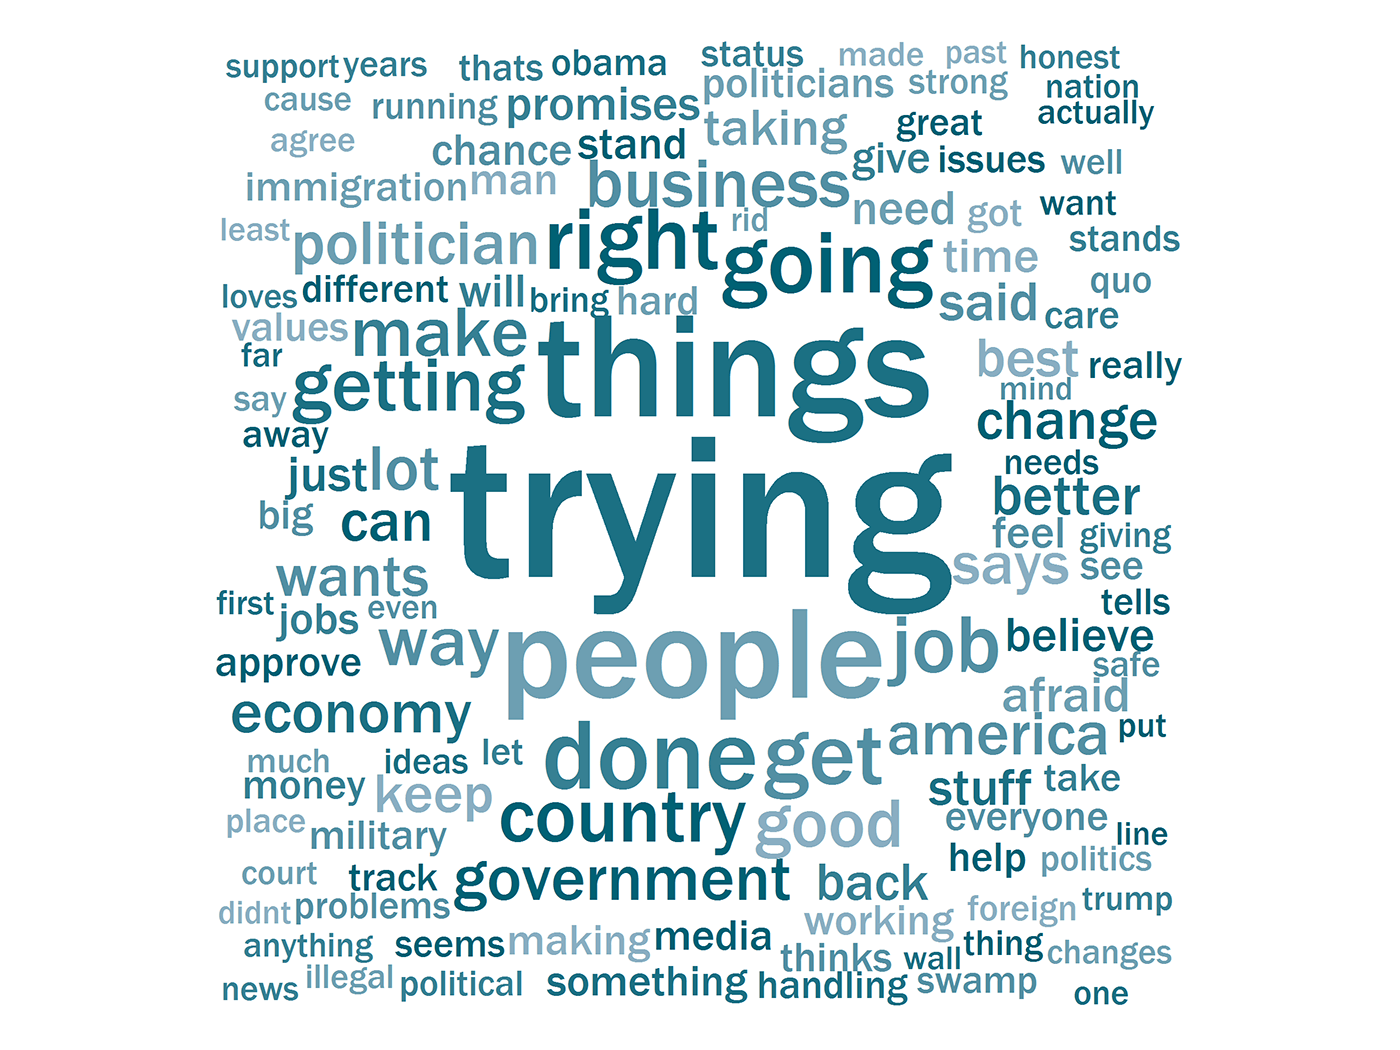 Words Minnesota Trump supporters use to describe the president.